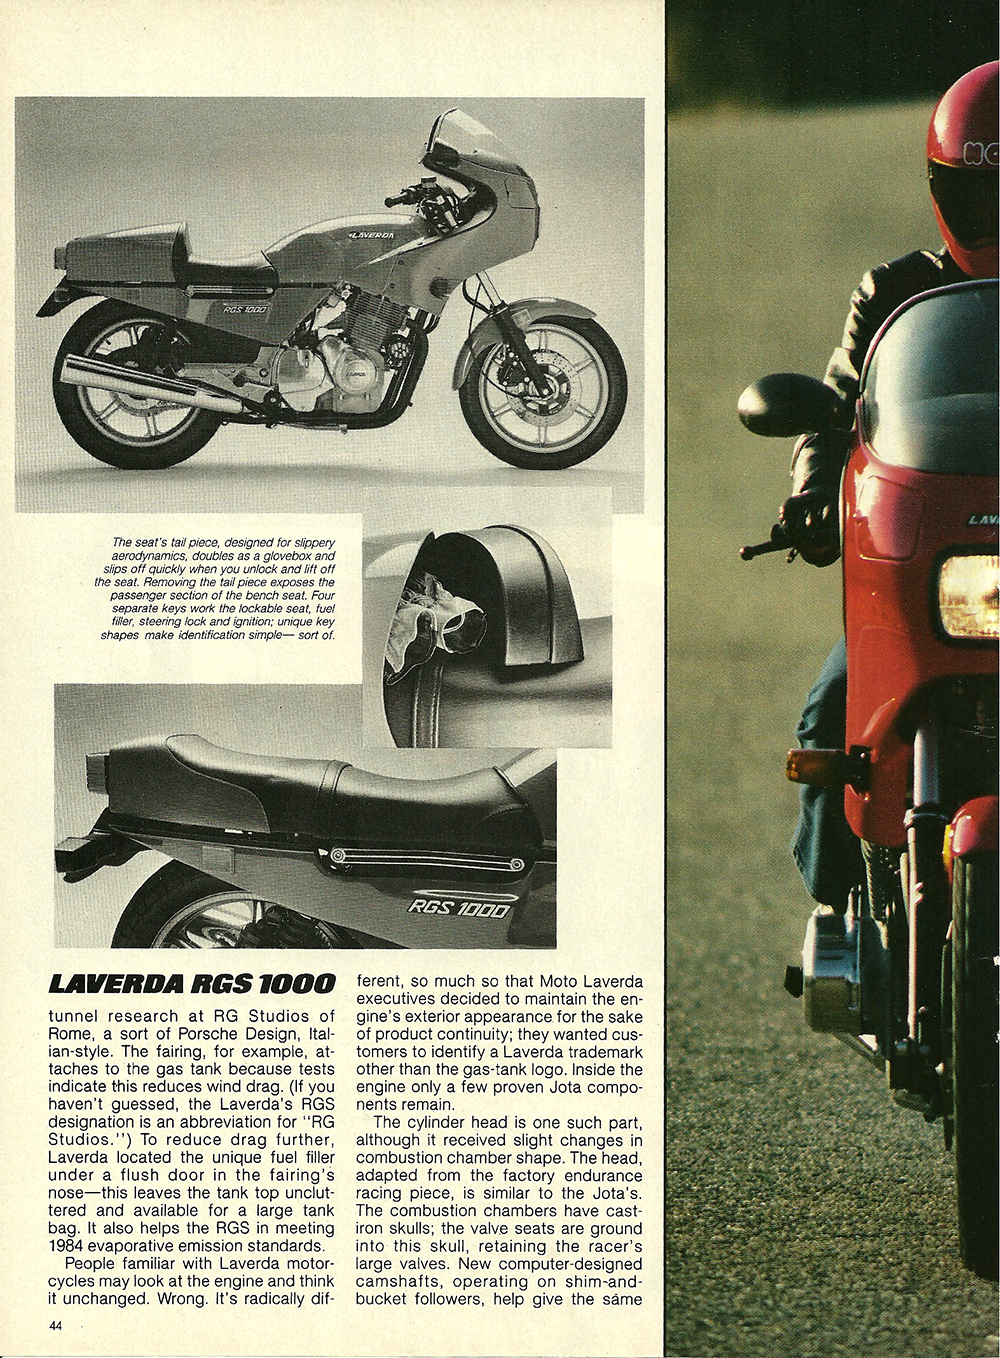 1984 Laverda RGS 1000 road test 3.jpg